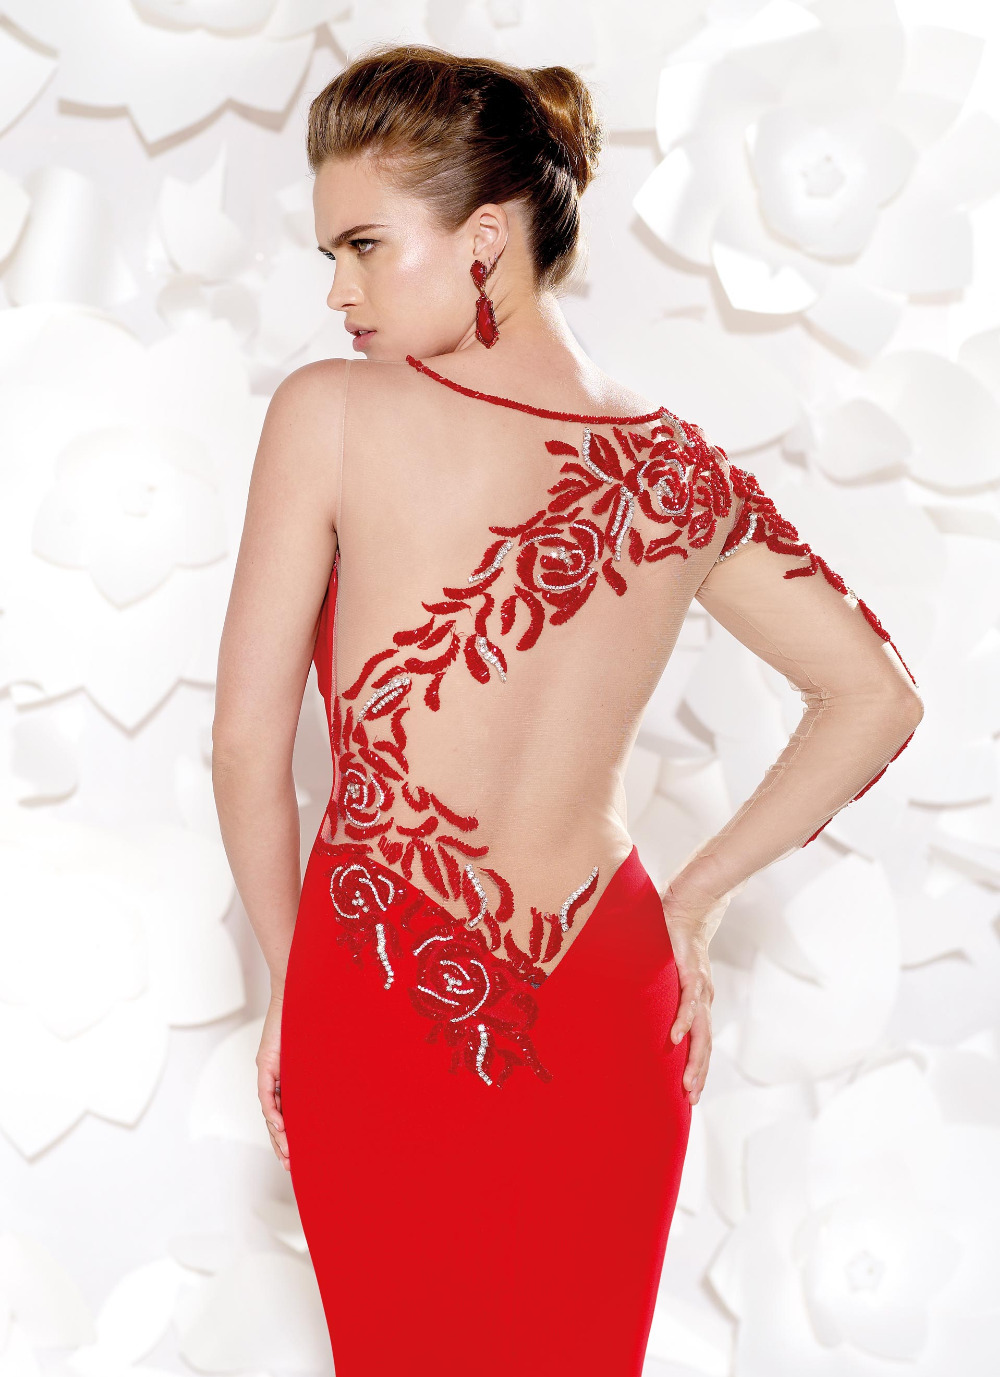 plus size red dresses for special occasions - gaussianblur